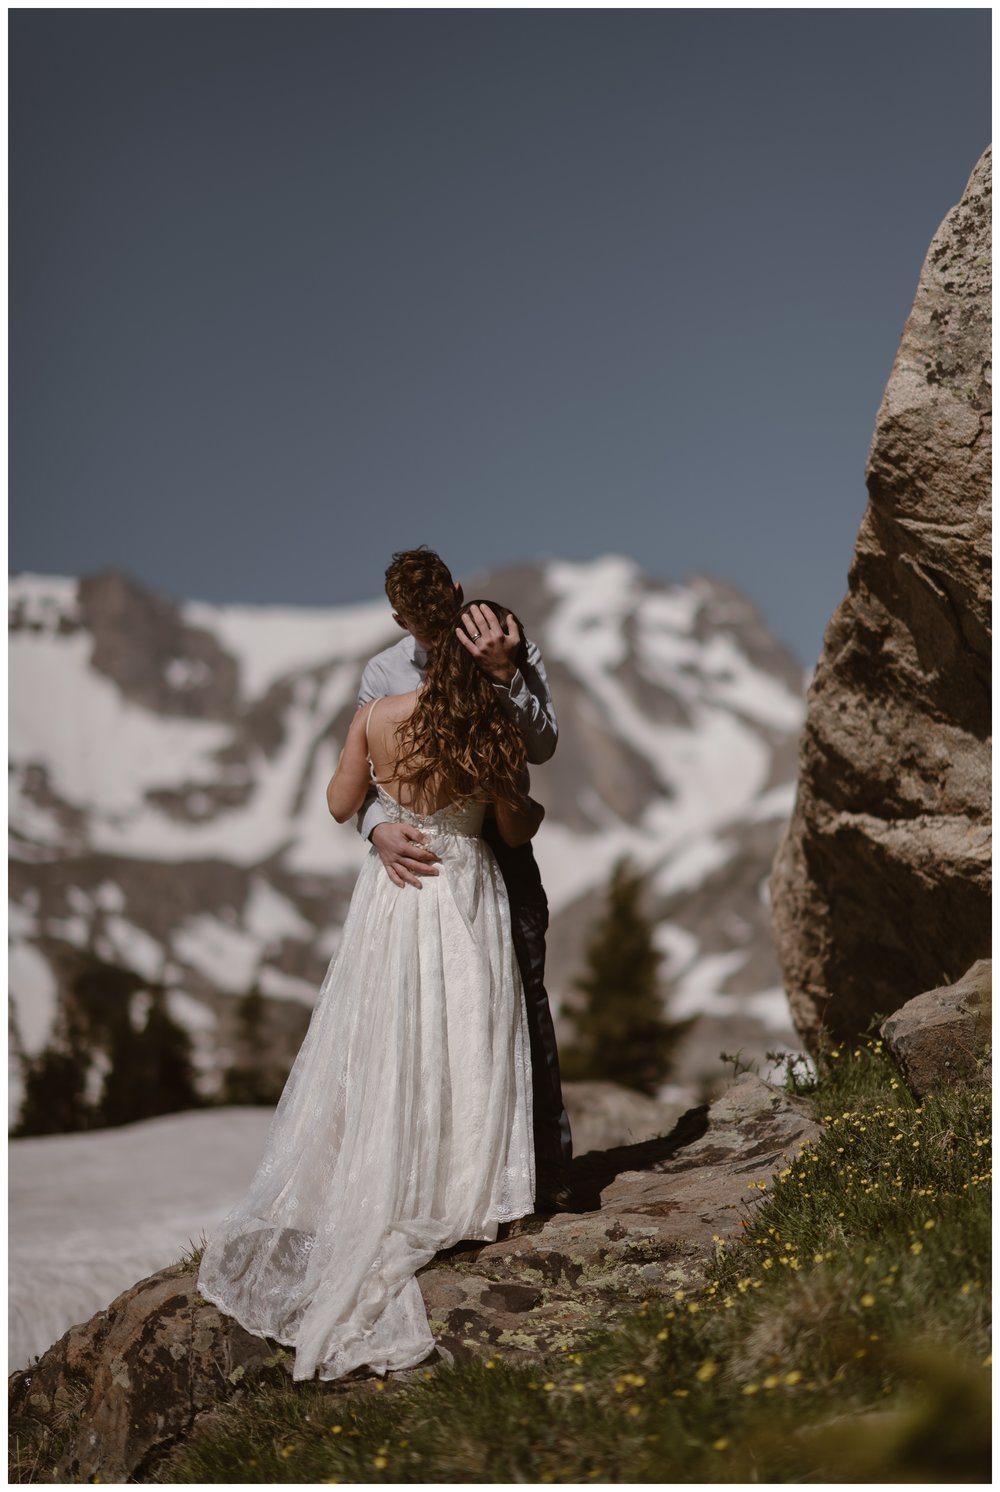 Karen and Matt embrace following their high alpine lake elopement ceremony on the shores of Lake Isabelle in Nederland, Colorado in the early morning hours. Photo by Adventure Instead, Maddie Mae.